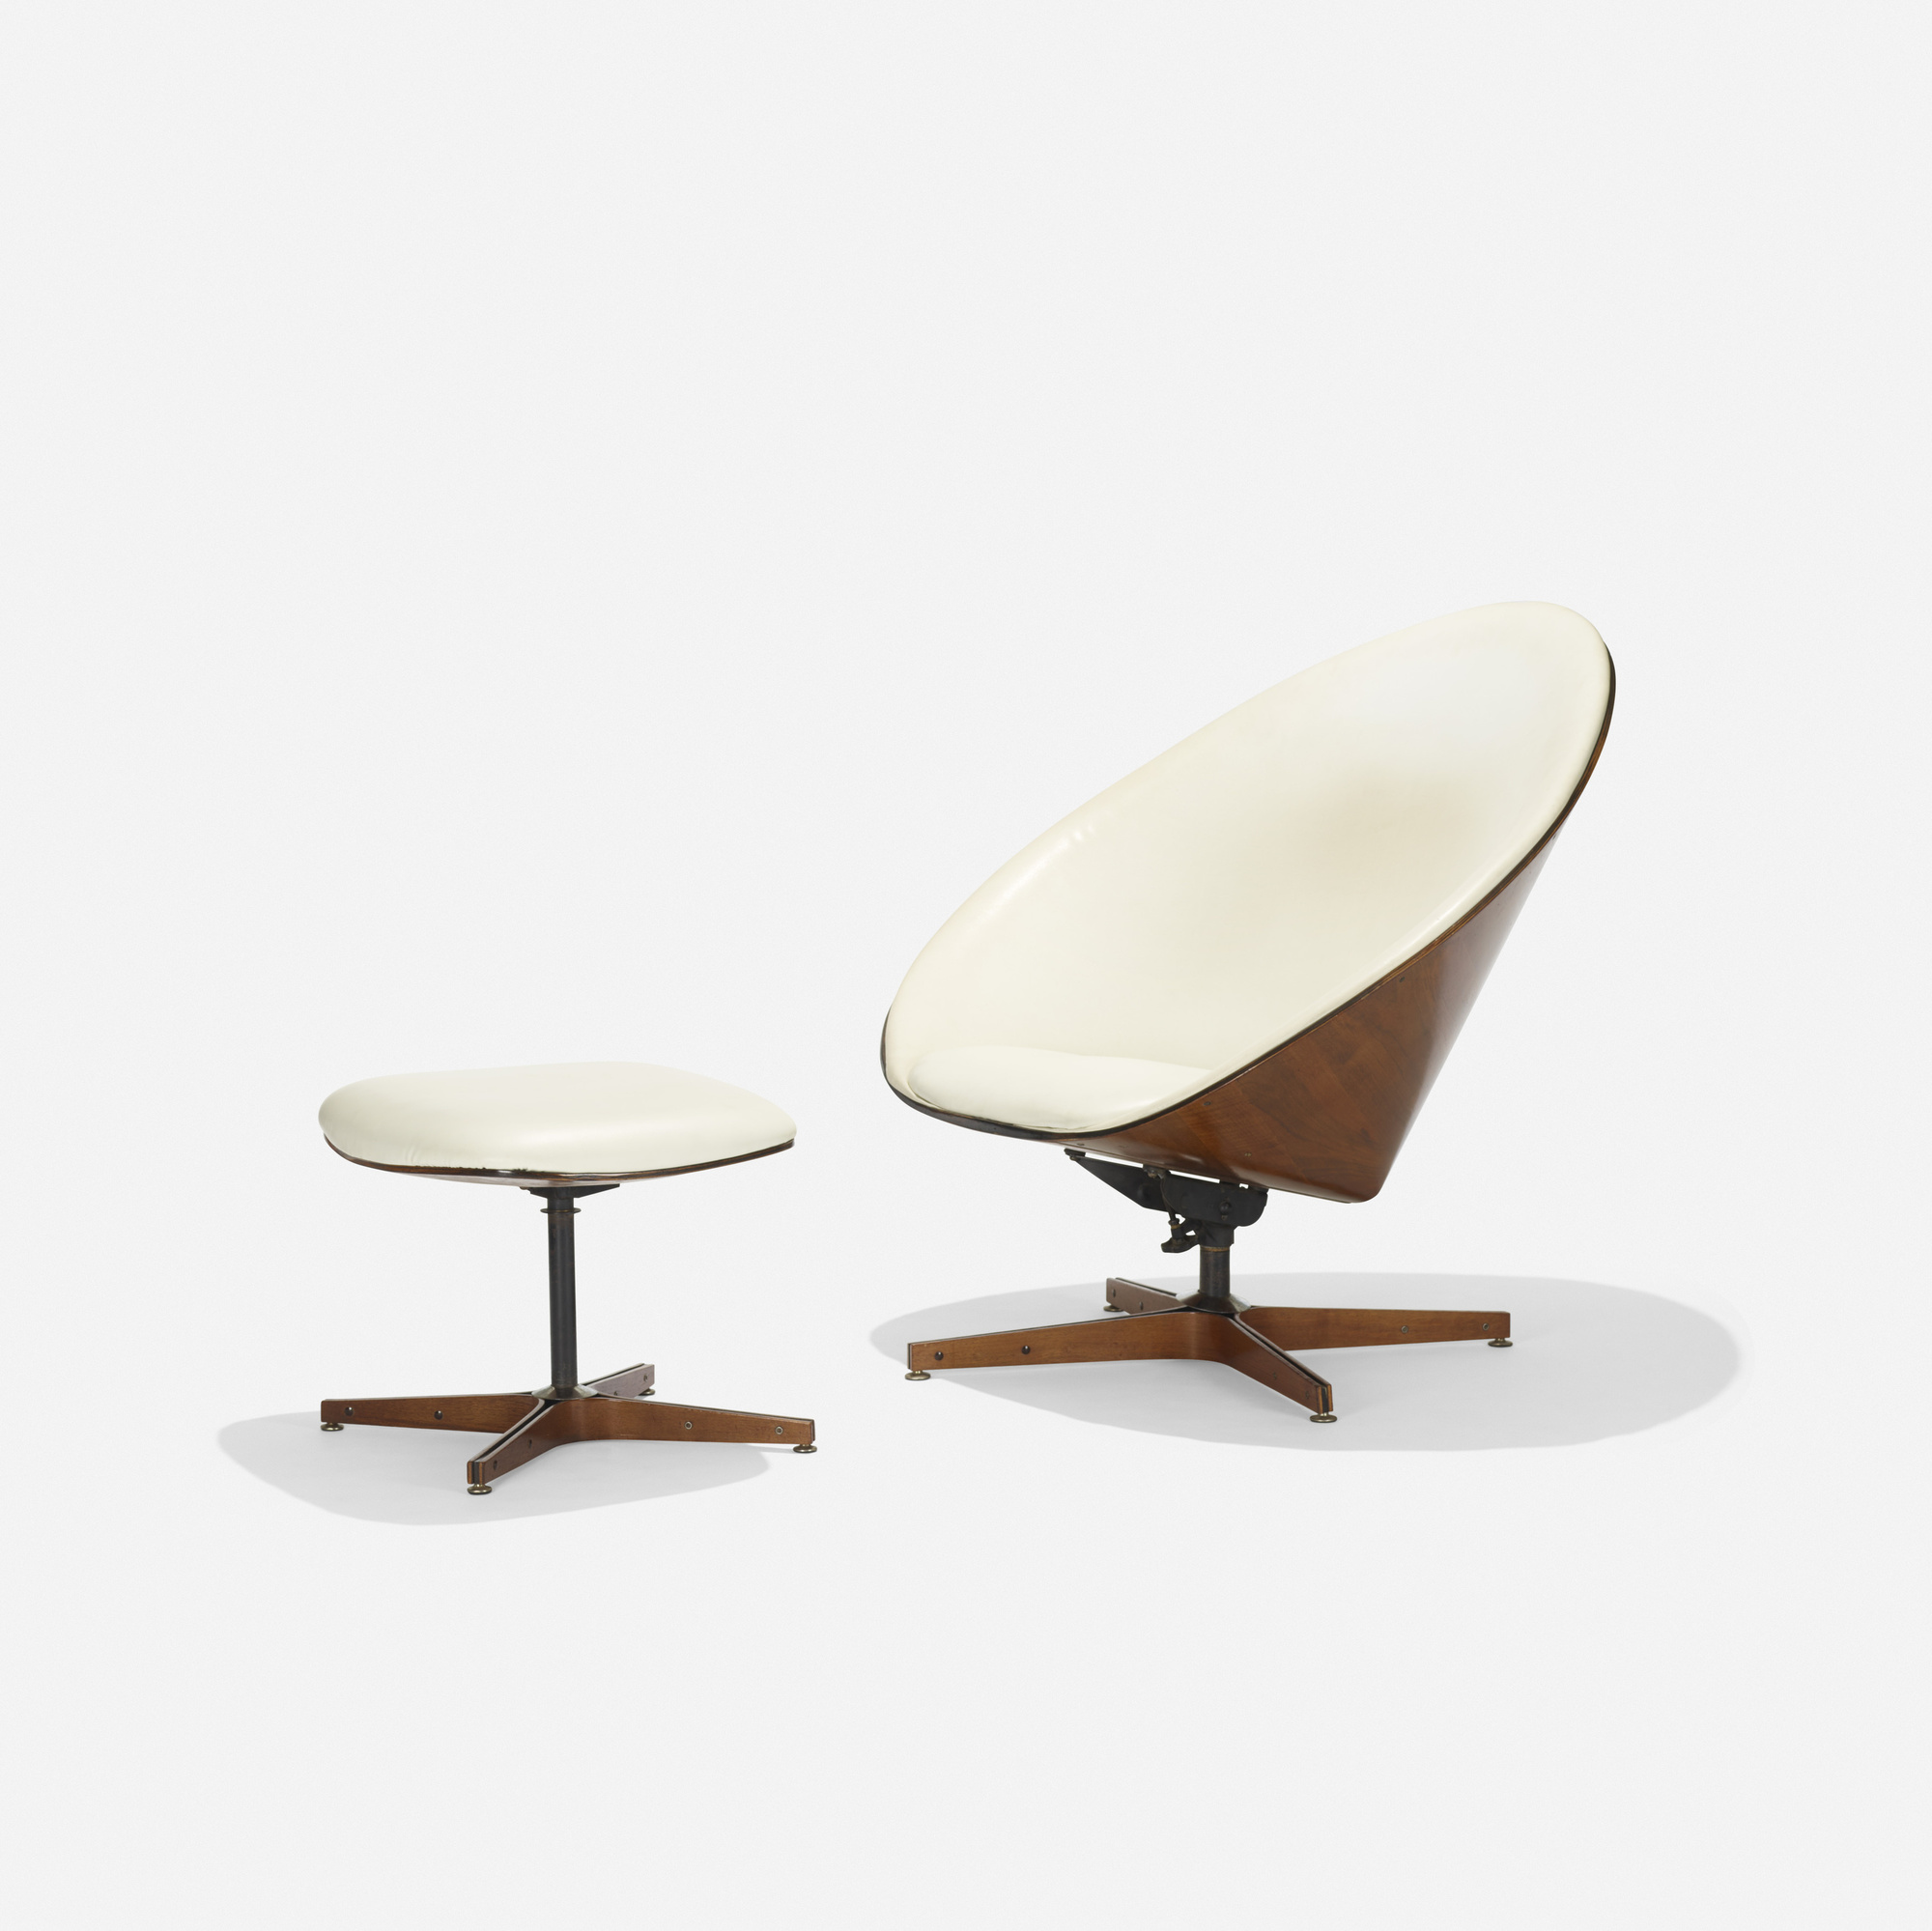 188: George Mulhauser / Lounge Chair And Ottoman (1 Of 3)